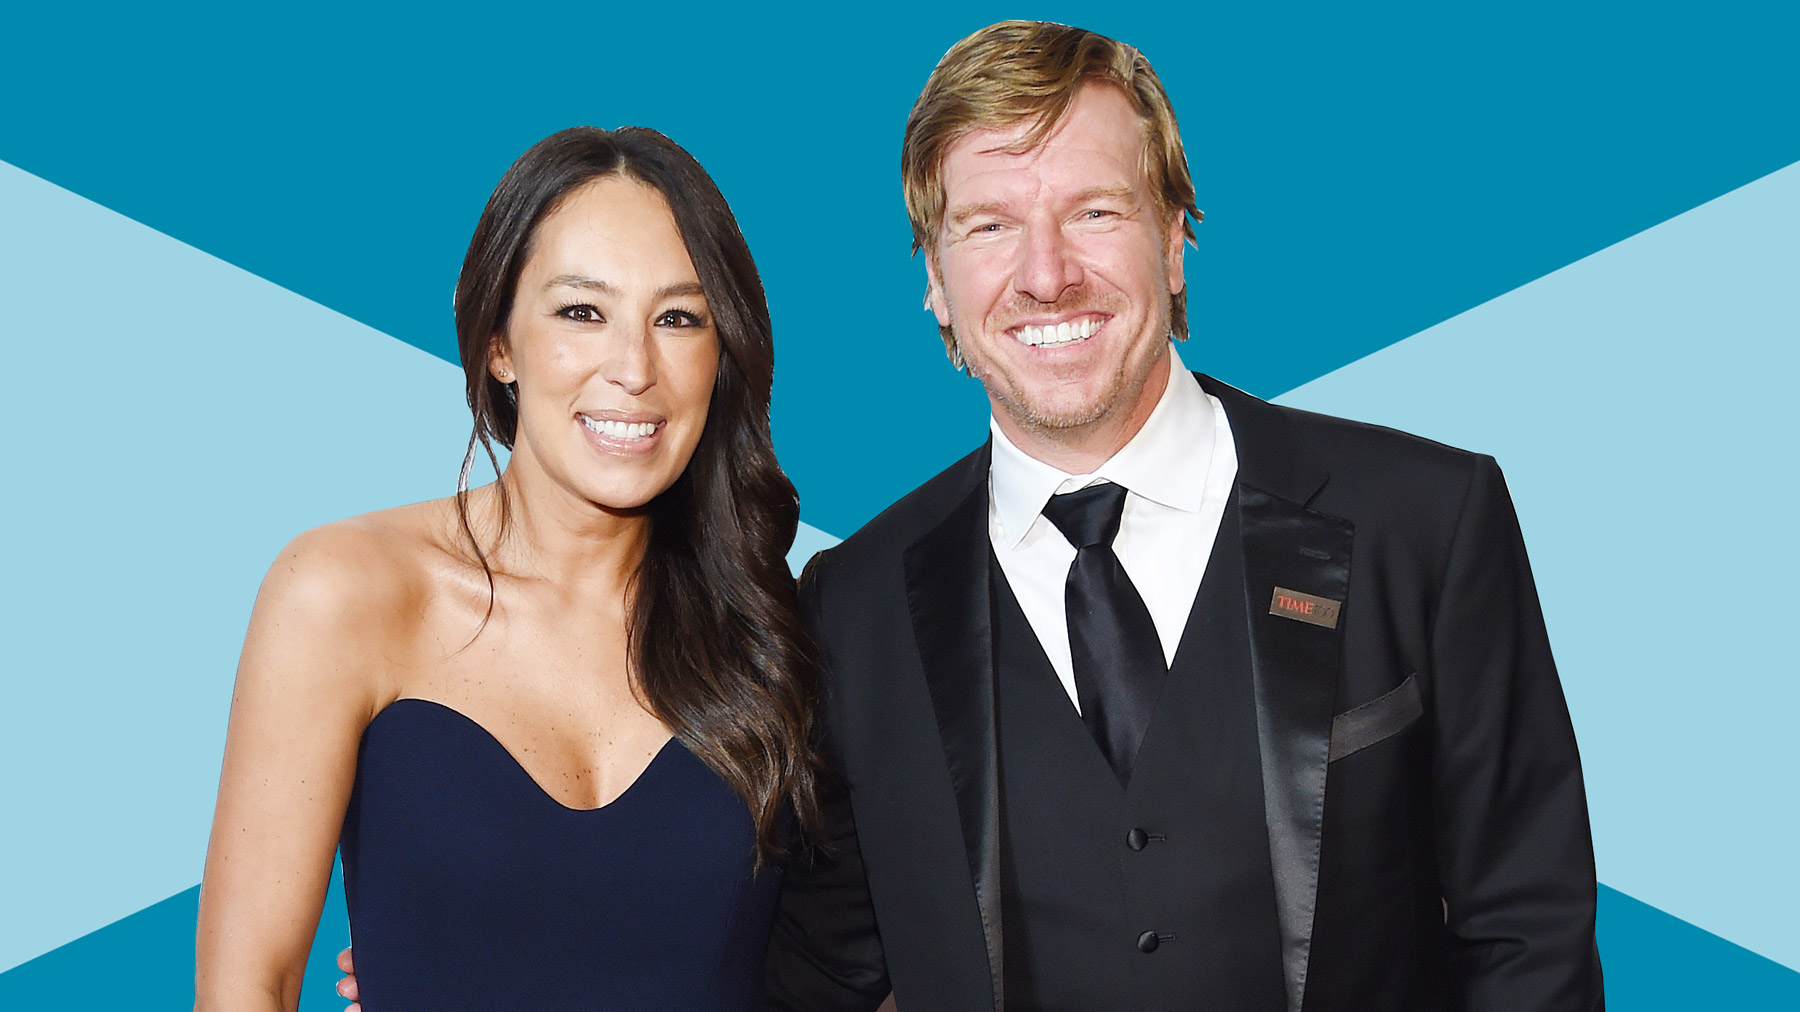 Chip and Joanna Gaines - makeKINDNESSloud acts of kindness campaign